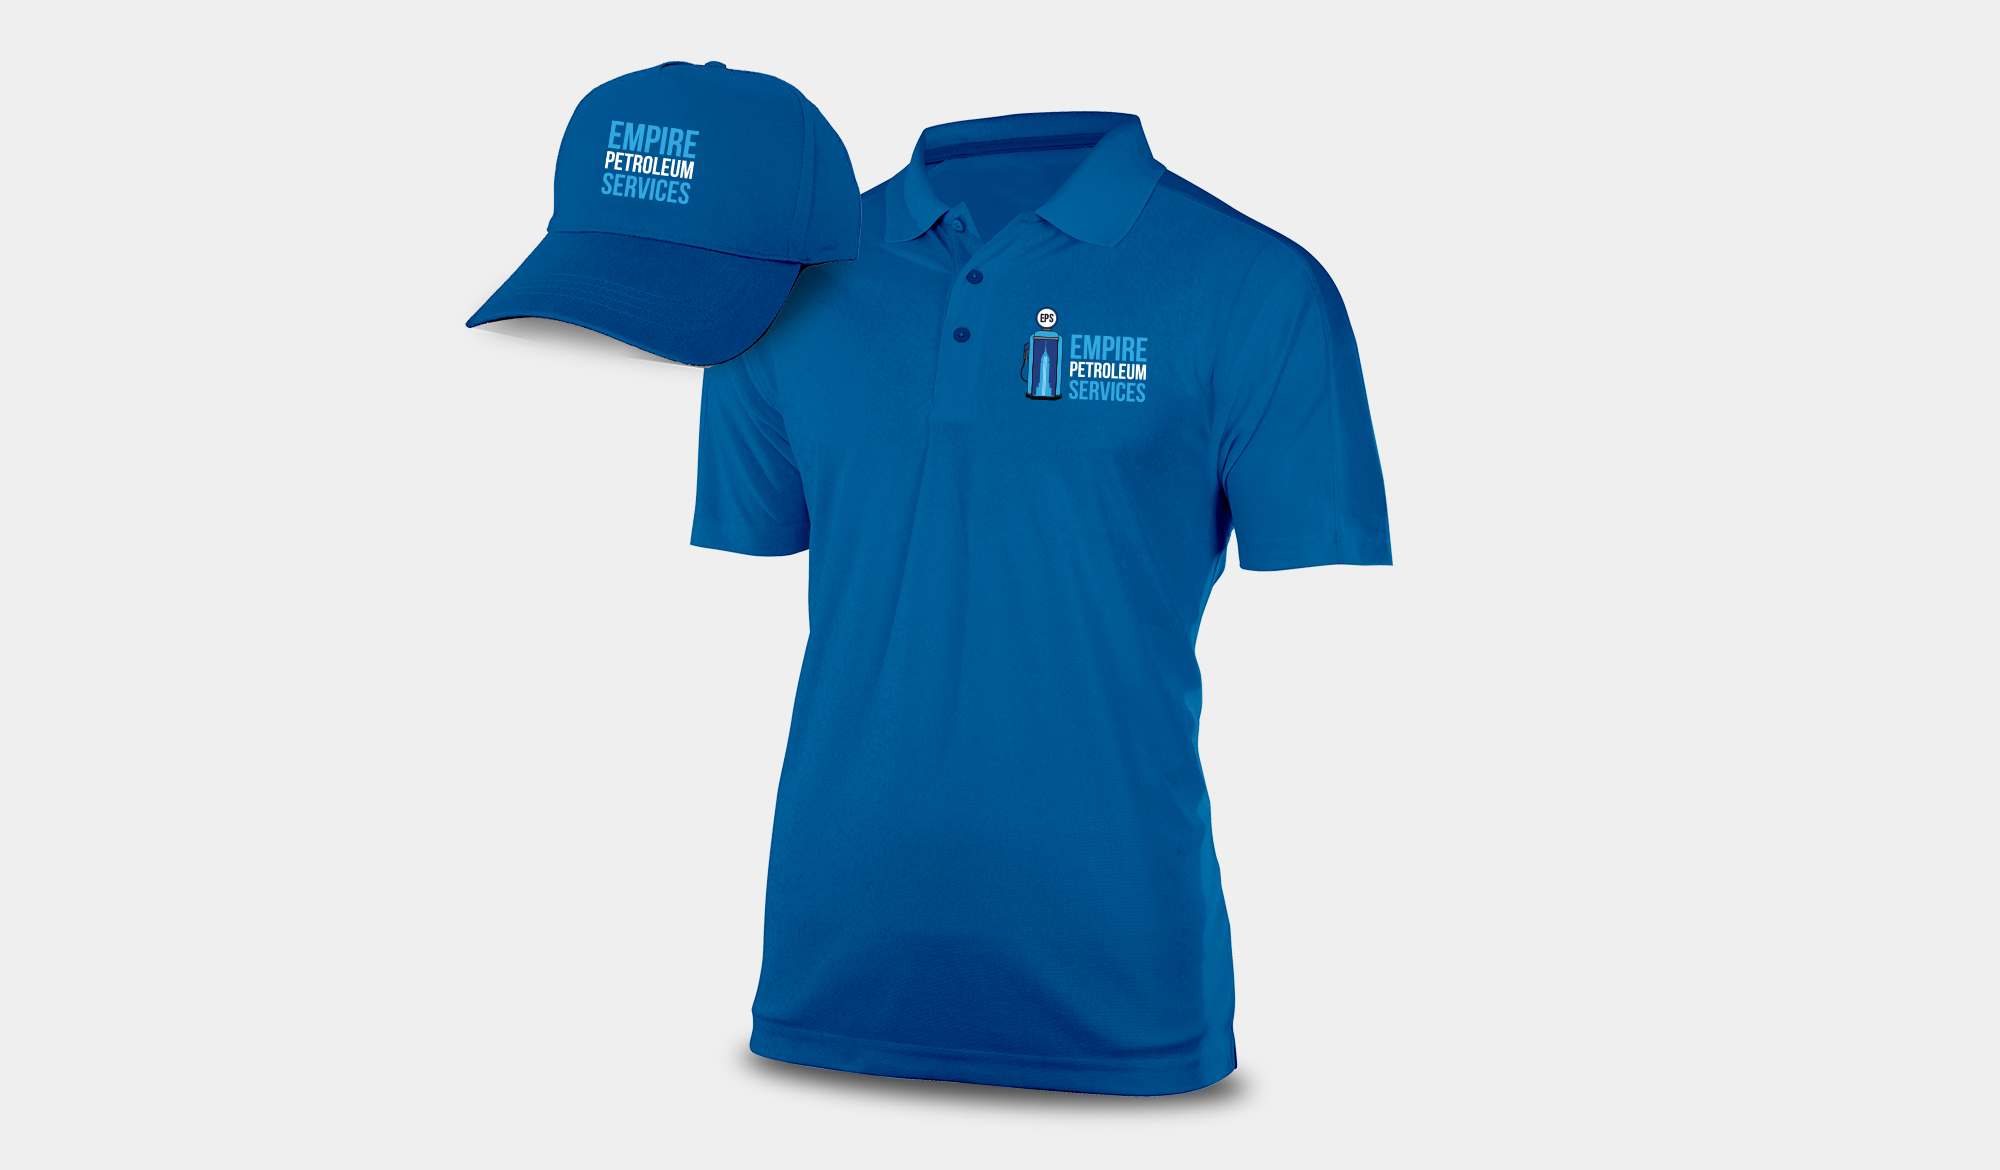 Empire Petroleum Services Apparel